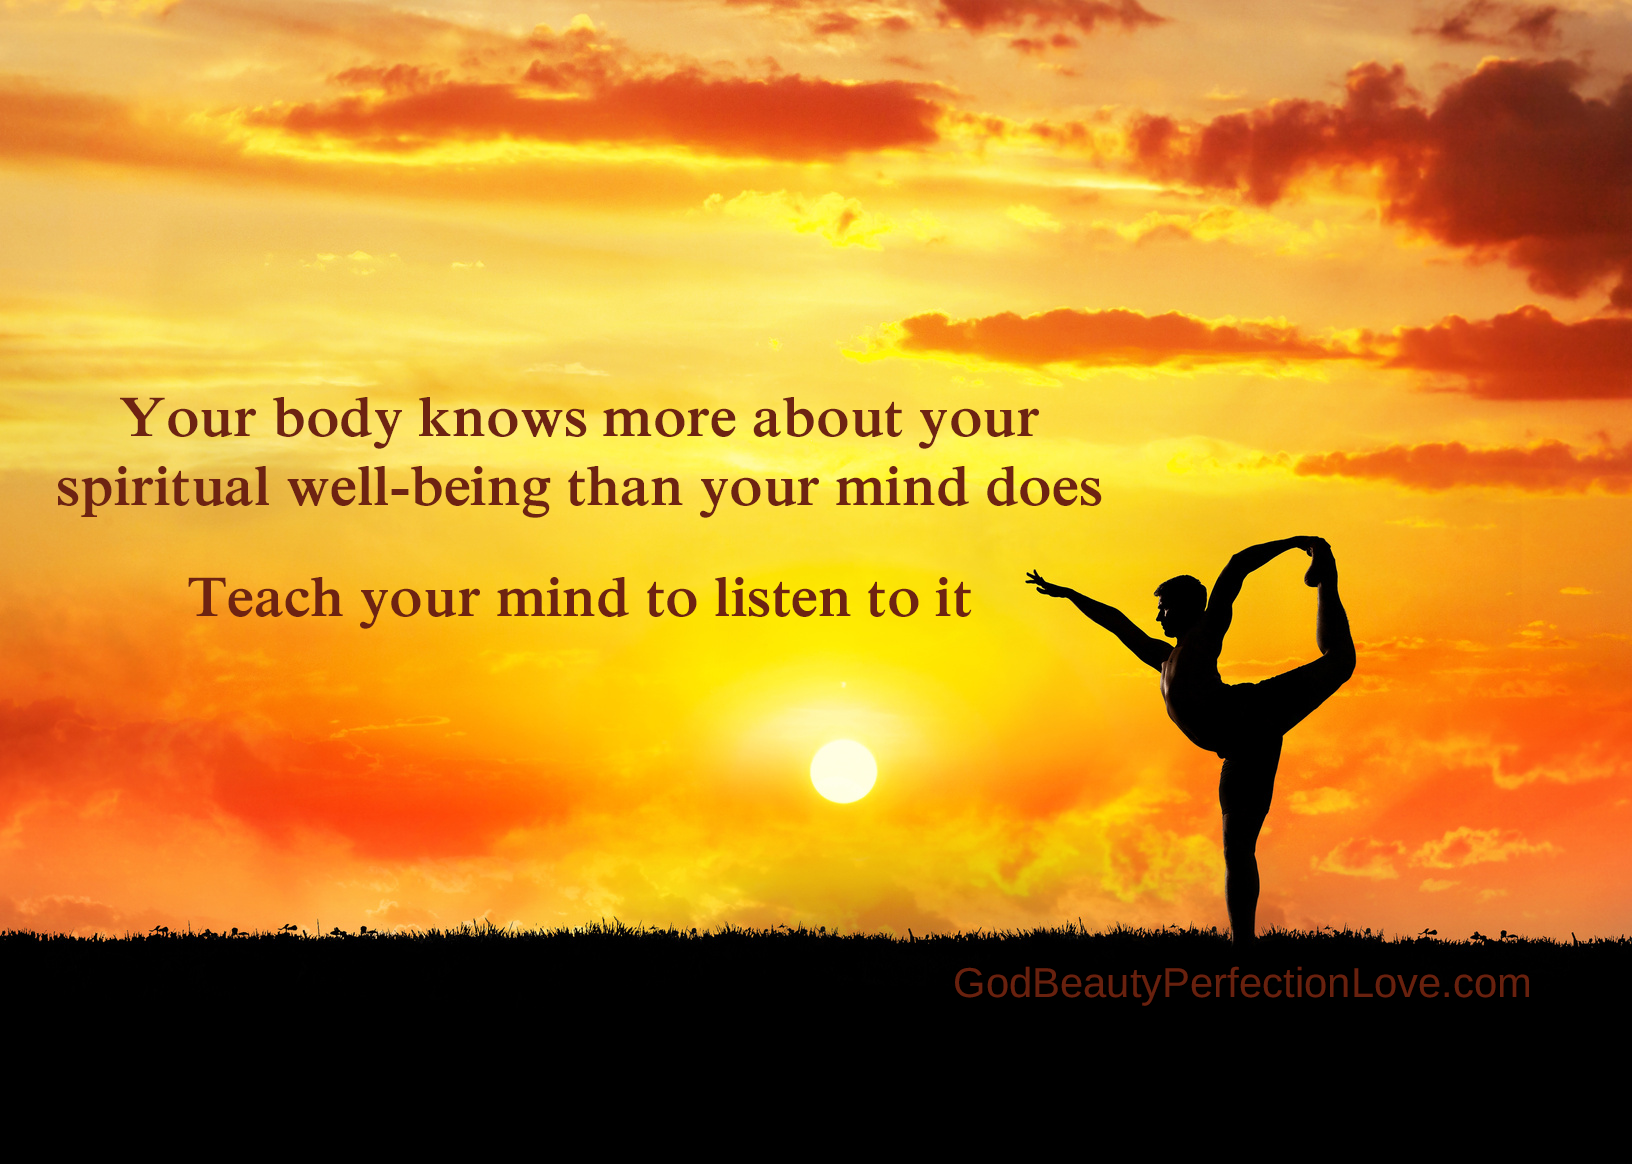 Your Body Knows More About Your